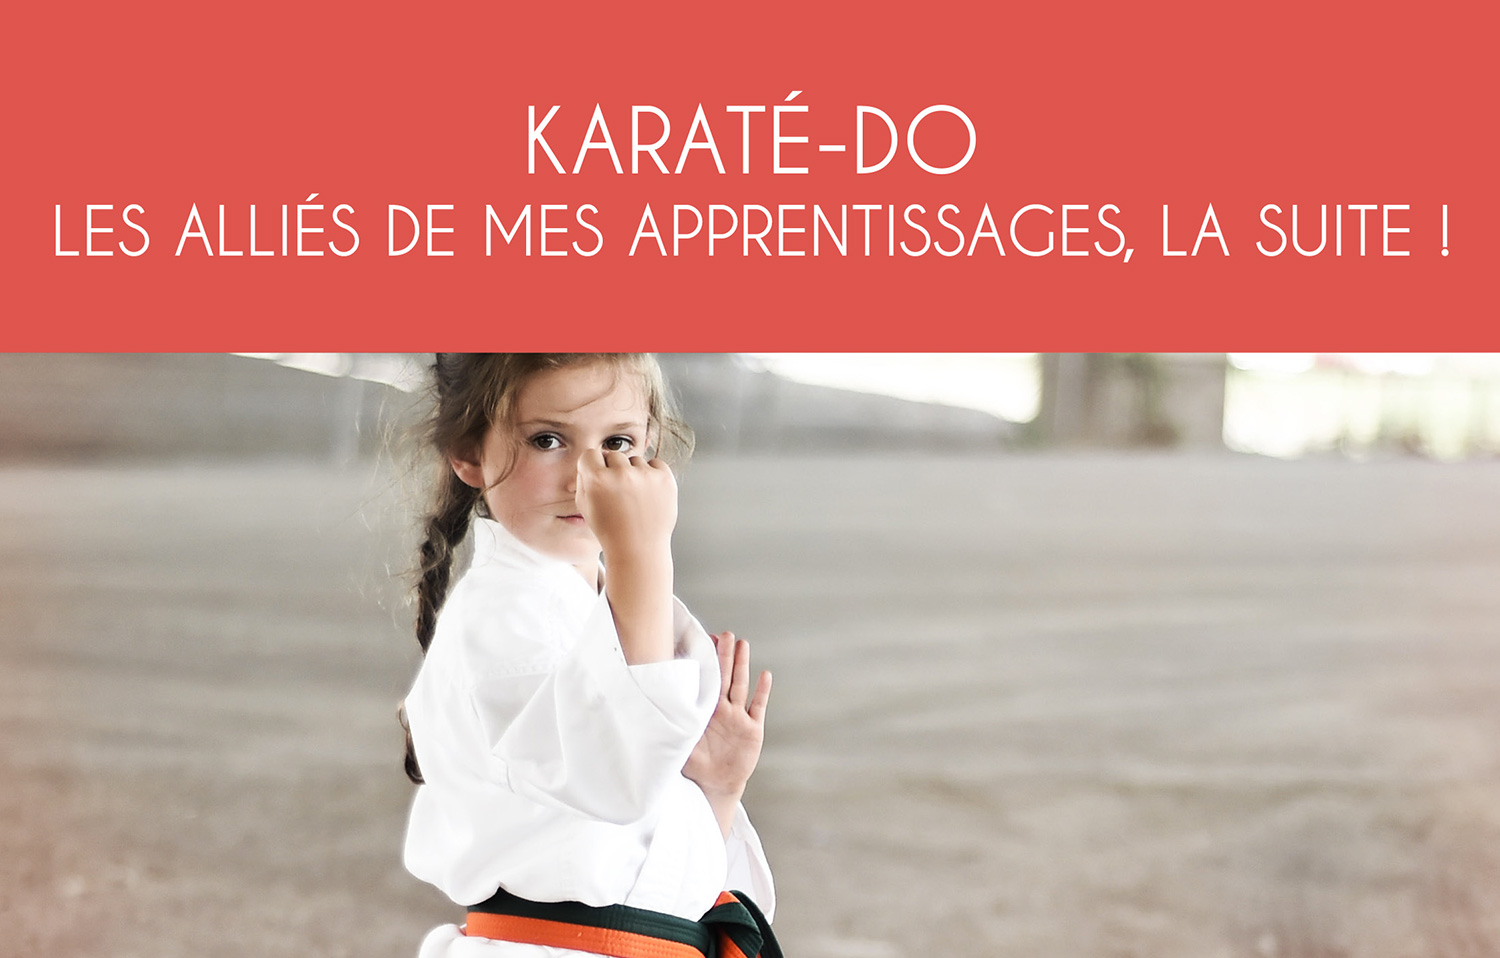 L'École martiale : KARATÉ-DO Les Alliés de mes apprentissages, la suite !